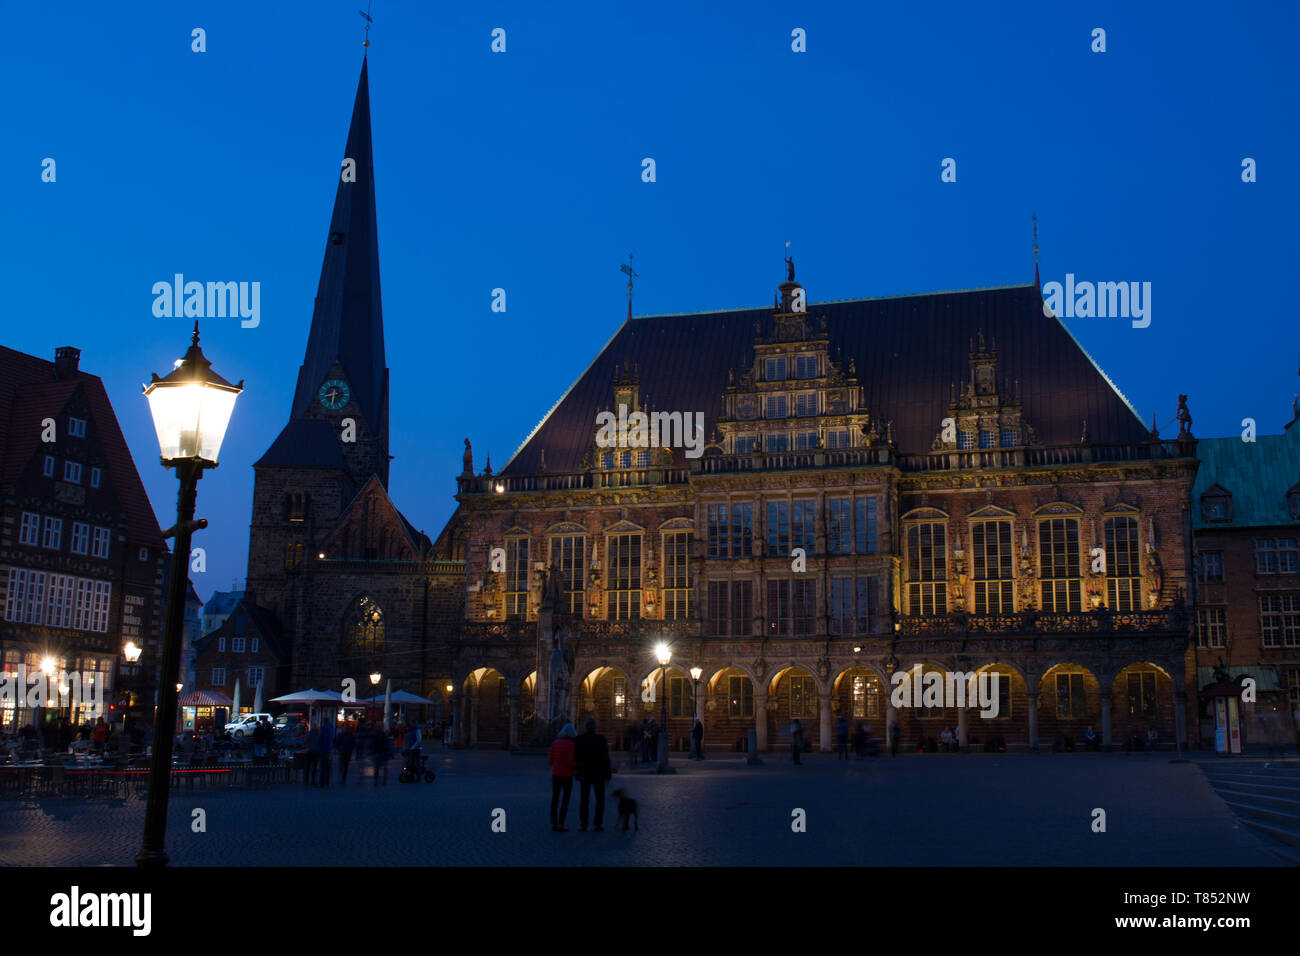 UNESCO cultural heritage town hall and market square in Bremen during blue hour Stock Photo